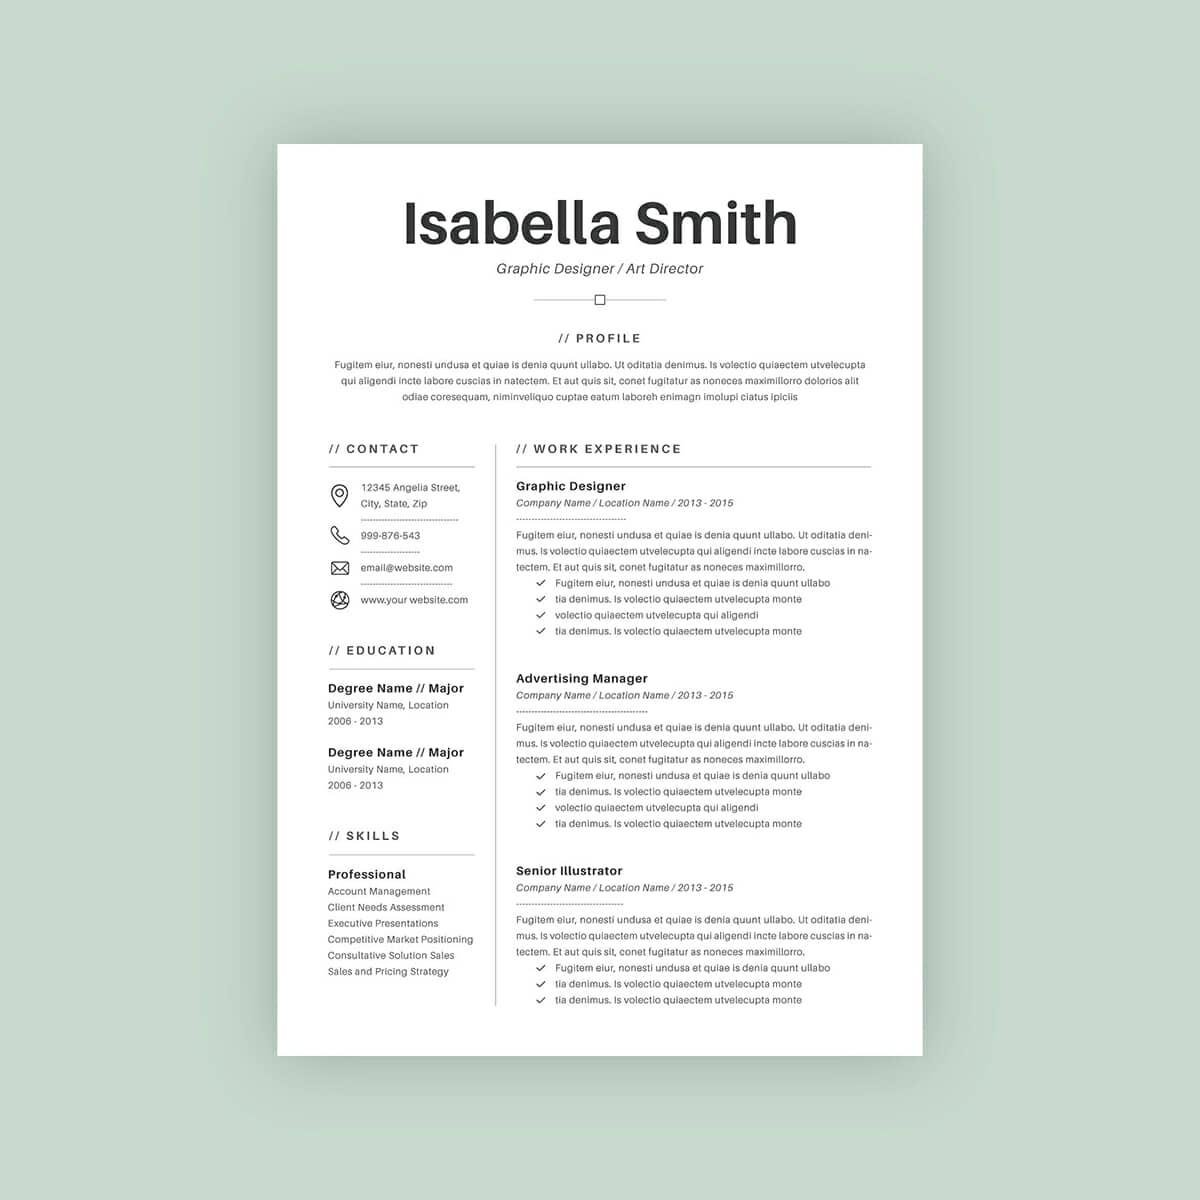 Superieur Basic Template For Resume With A Lot Of Experience. U201c